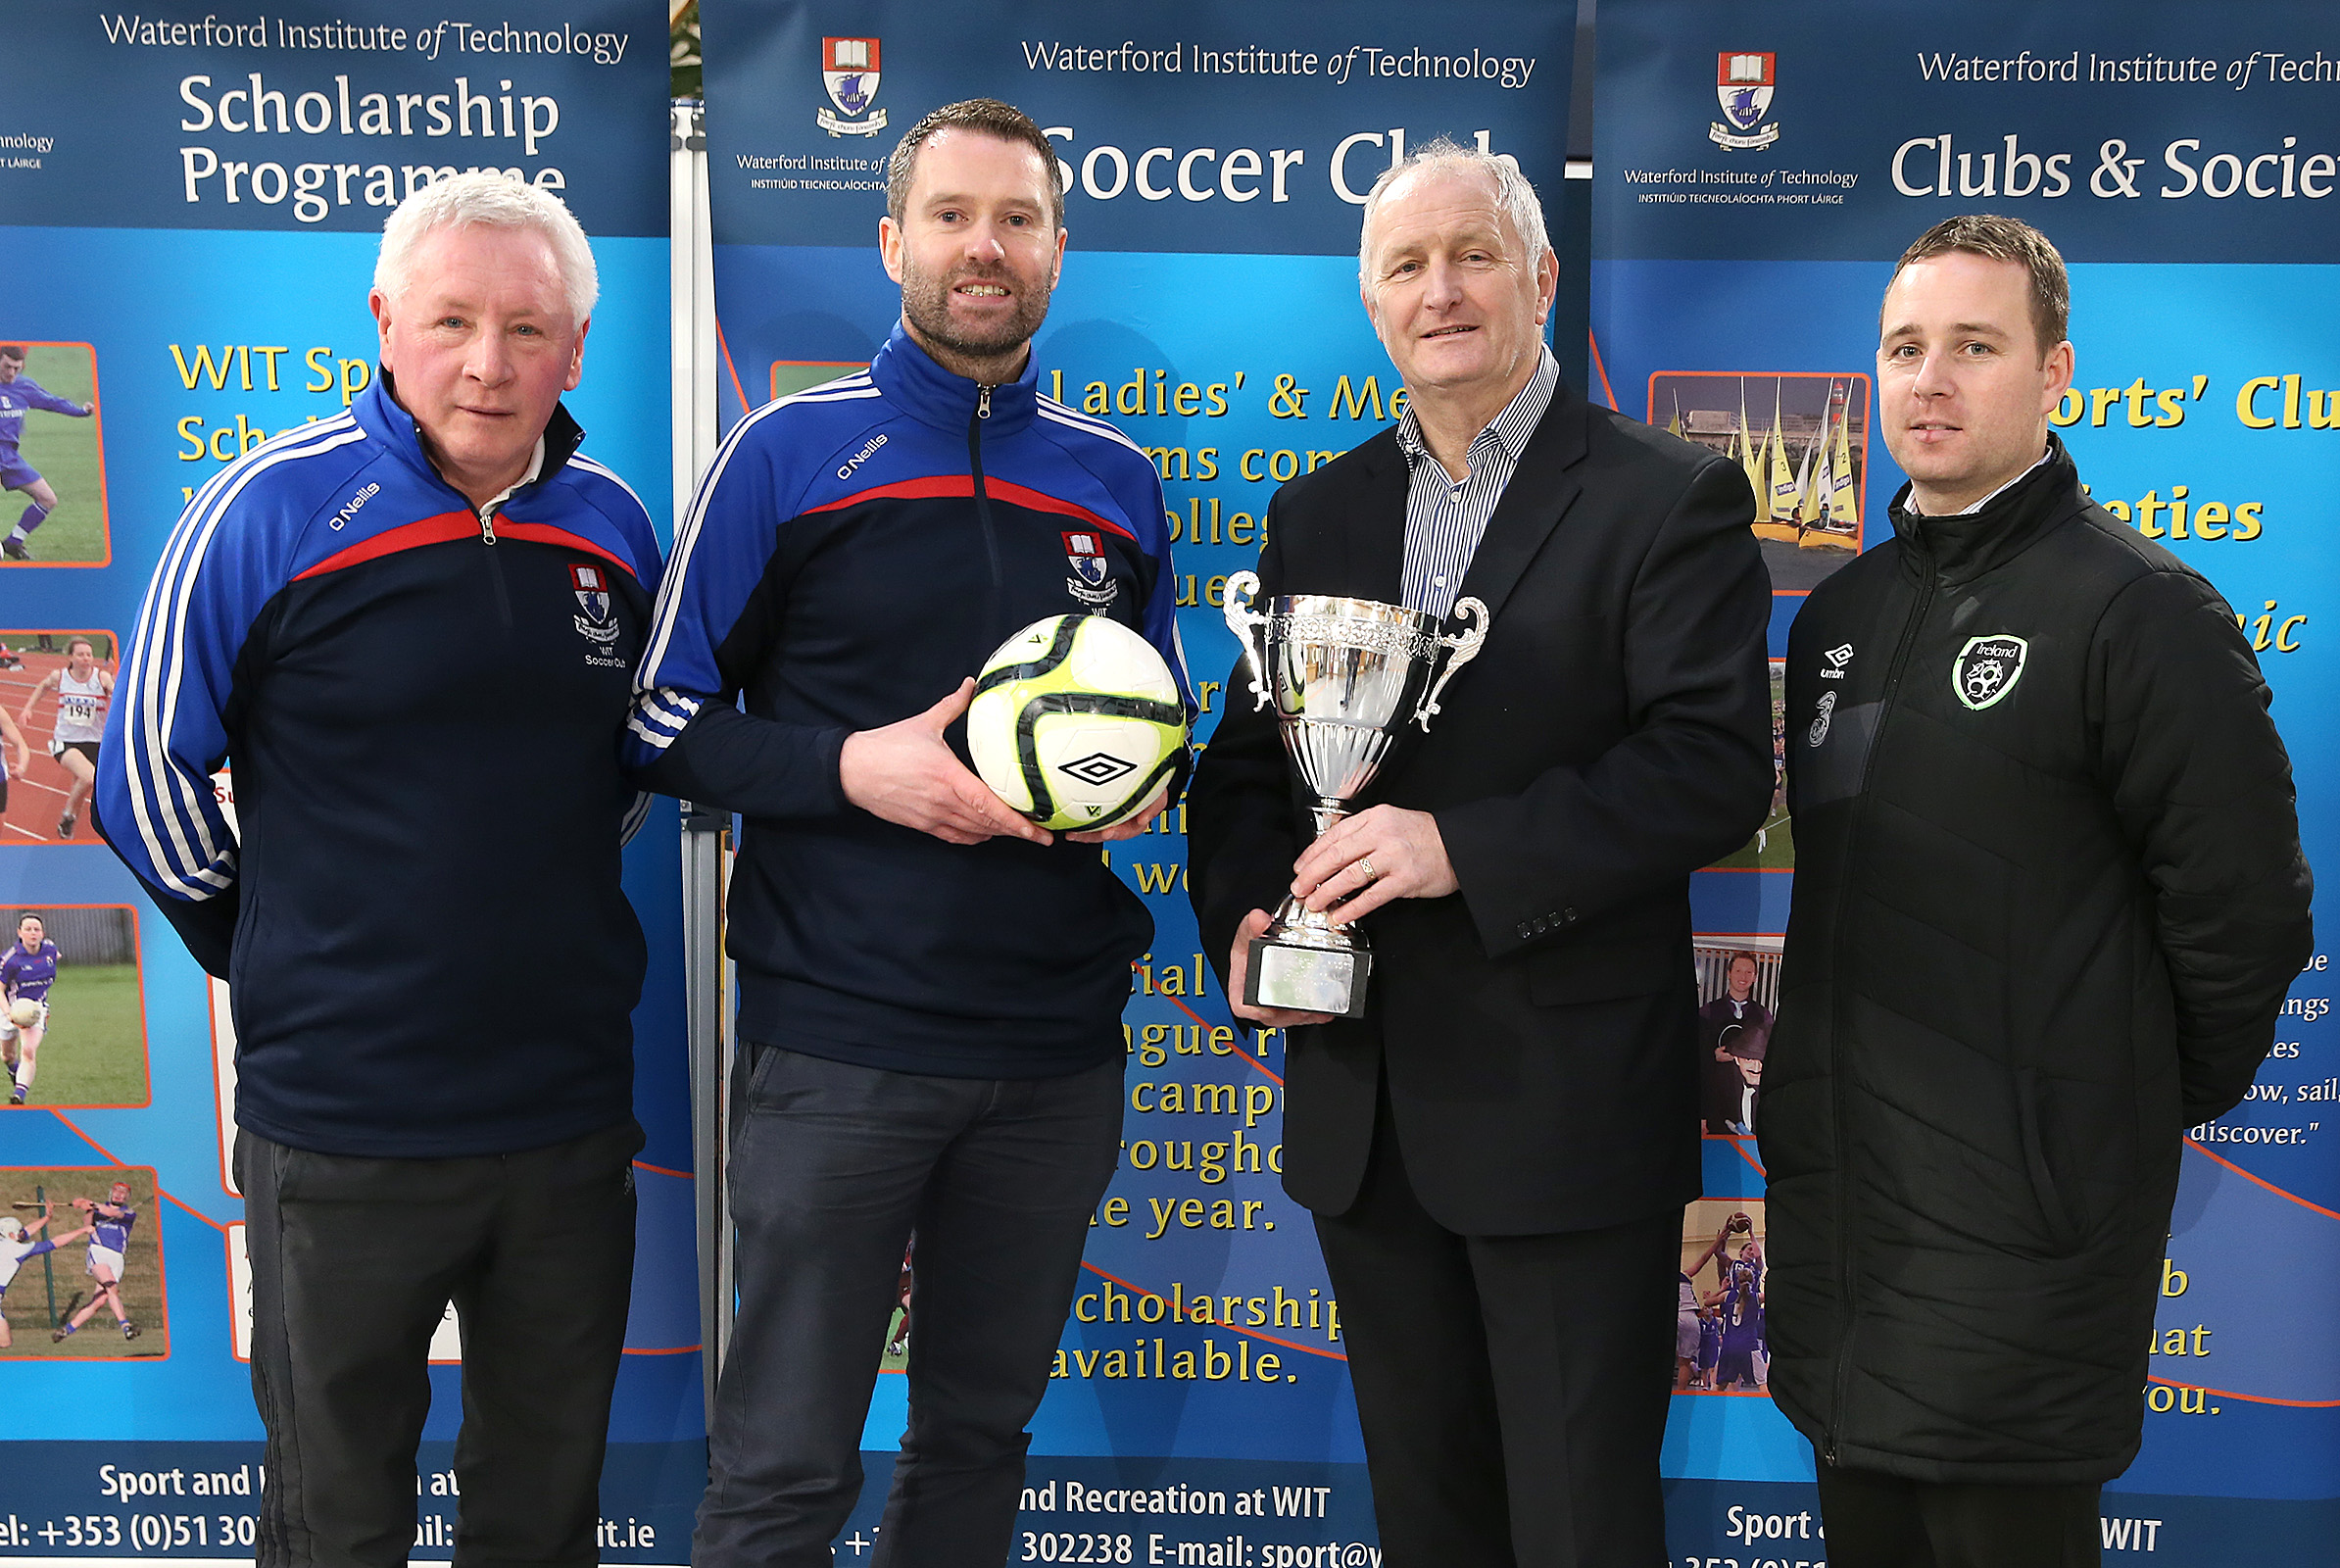 From left to right: John Douglas (WIT Soccer Development Officer), Robin Croke (WIT Clubs & Societies Officer), Joe O' Brien (Chairman of the Colleges Football Association of Ireland), Mark Scanlon (FAI National Co-Ordinator for Schools, Colleges & Universities).